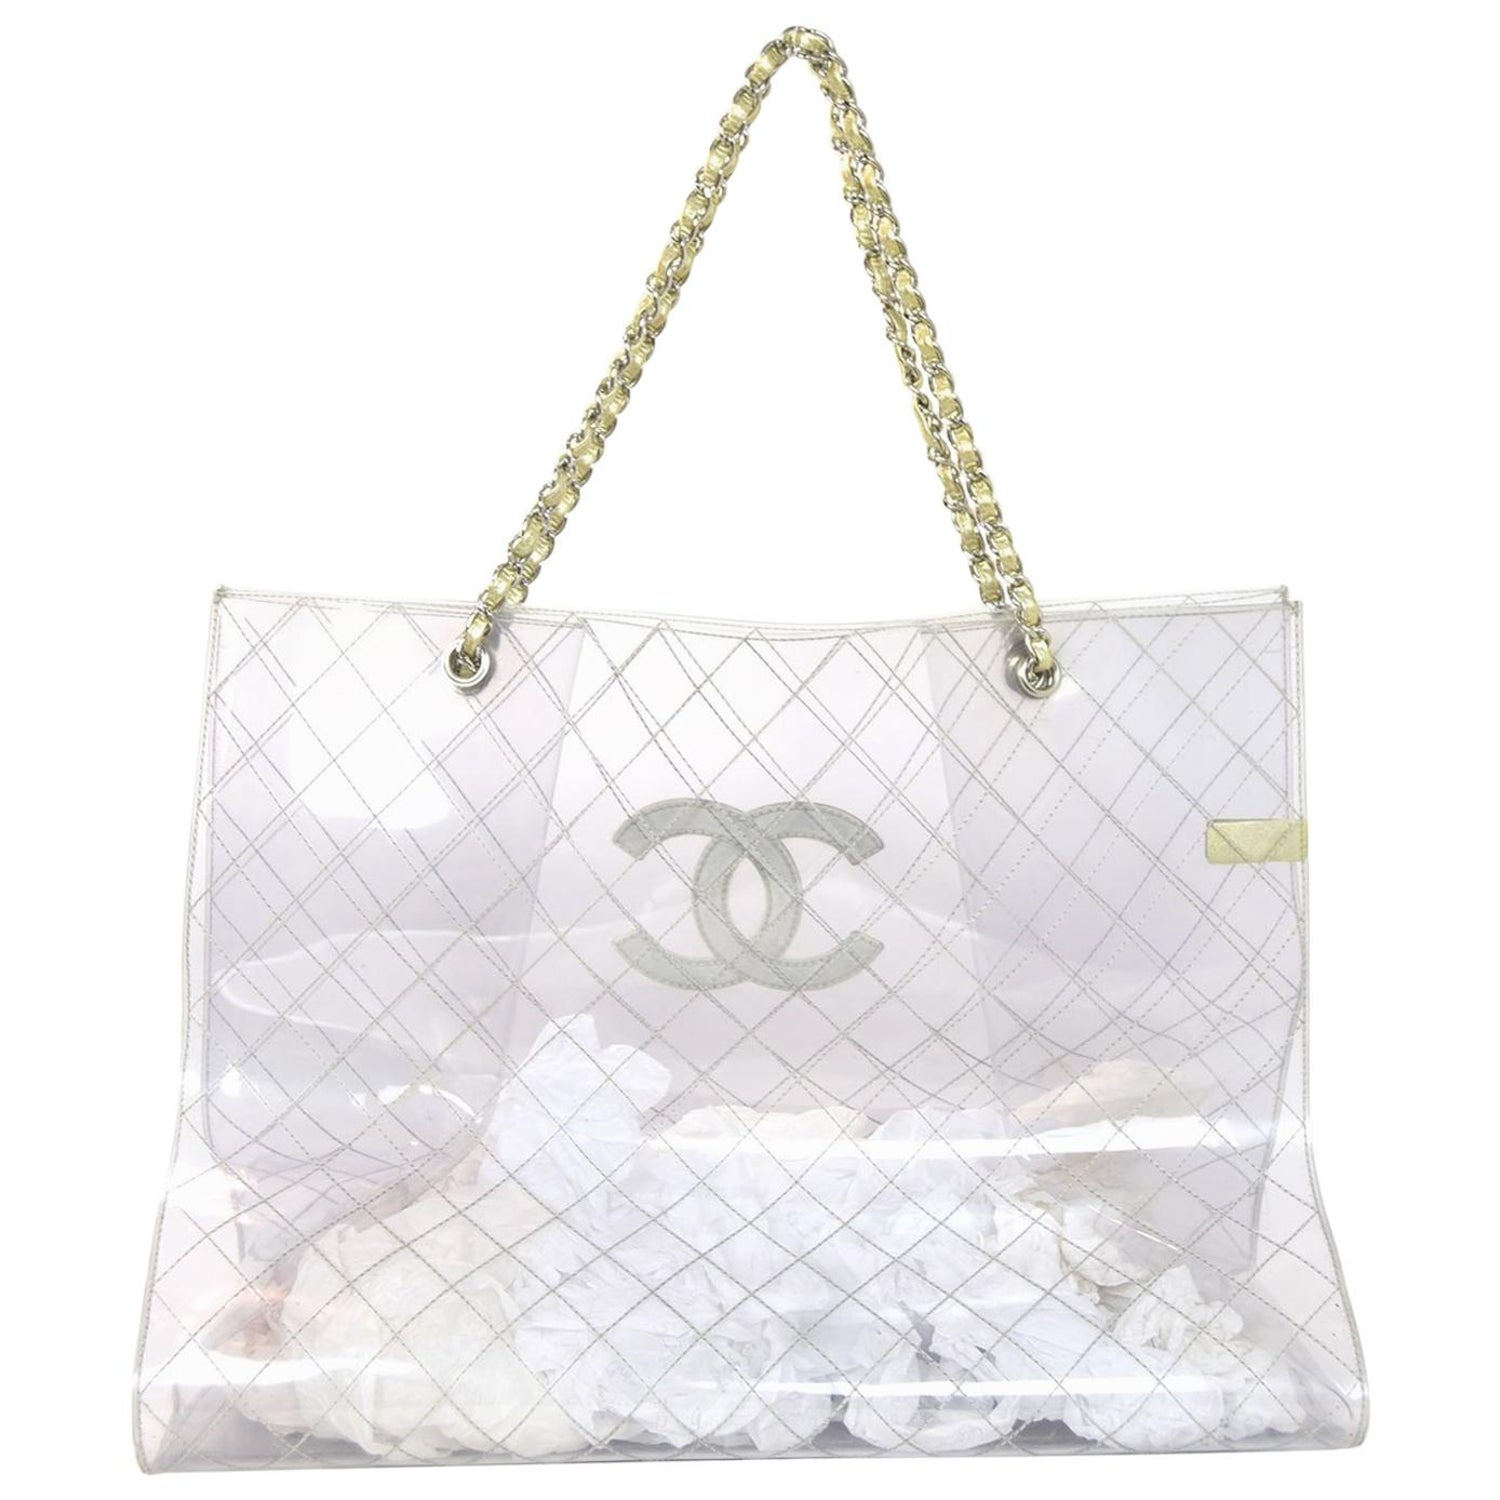 9cc7744df6a3 Chanel Collectors Clear and Gold Quilted PVC XXL CC Tote Bag For Sale at  1stdibs